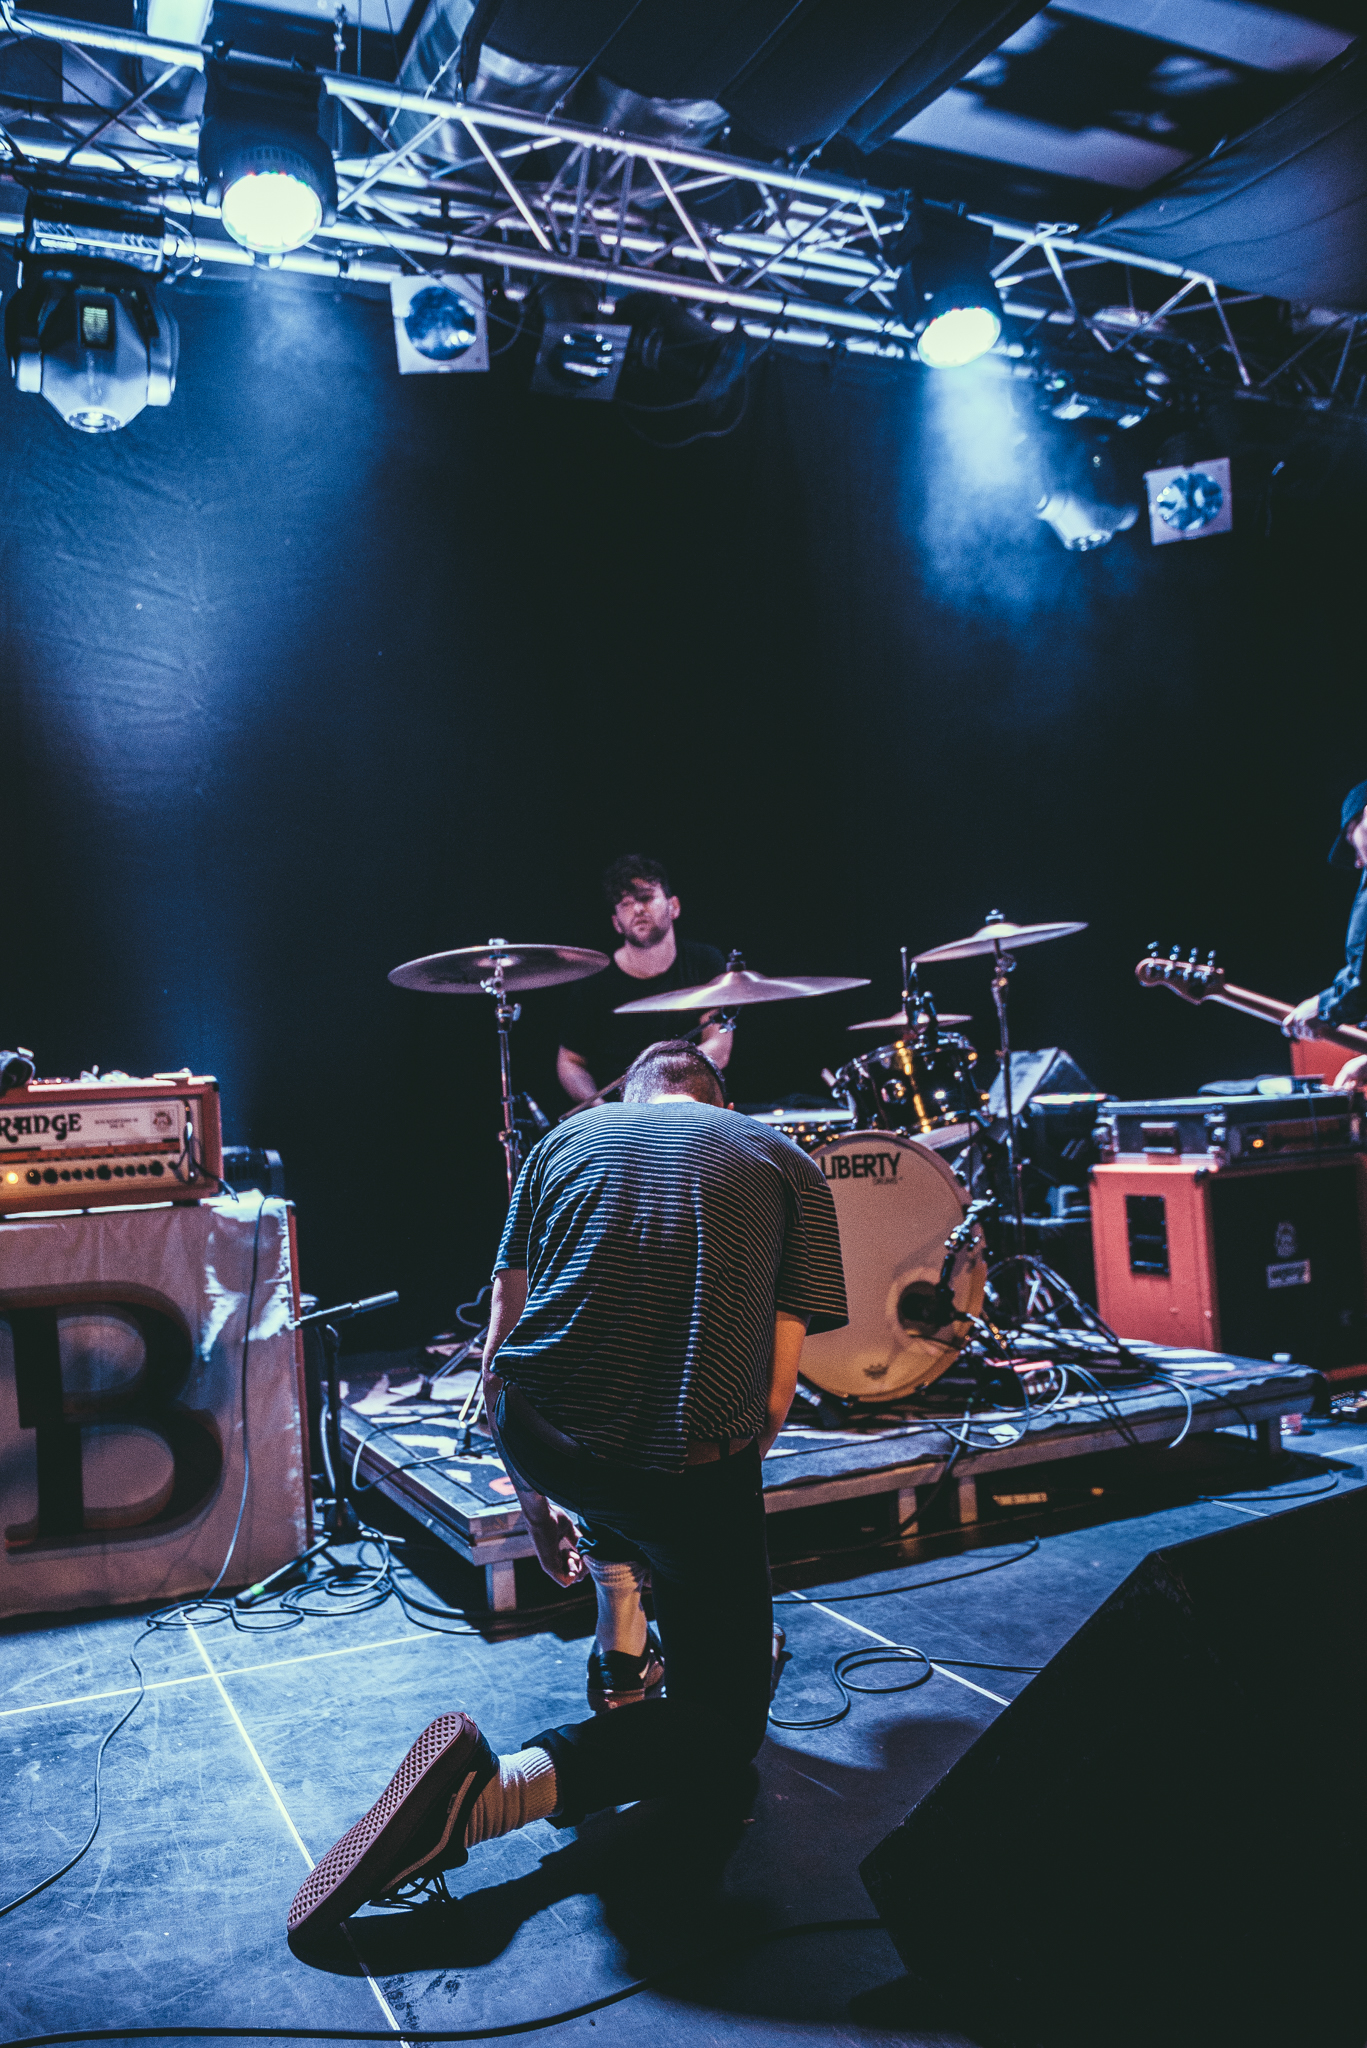 boston manor-0140.jpg